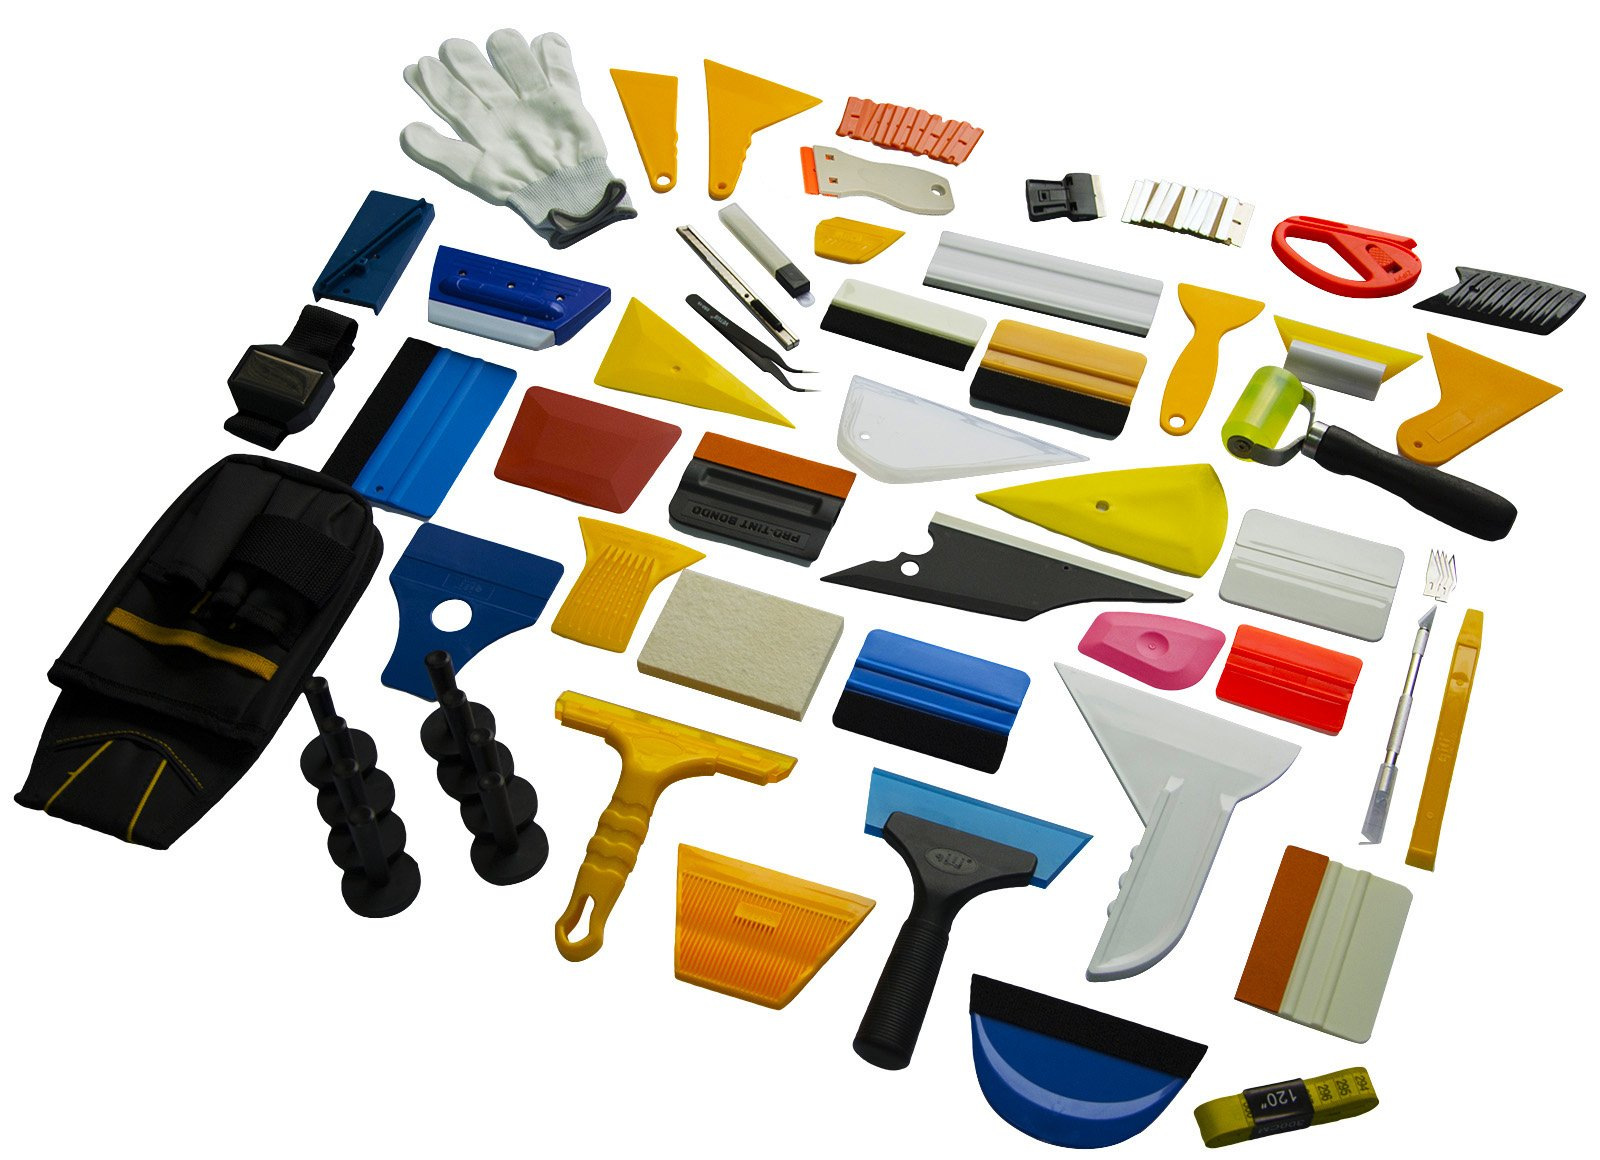 Ehids Professional Window Film Vinyl Wrap Kit Including All Tools Full Complete Squeegees, Scrapers, Cutters, Holders, Tool Pouch by Ehdis (Image #4)